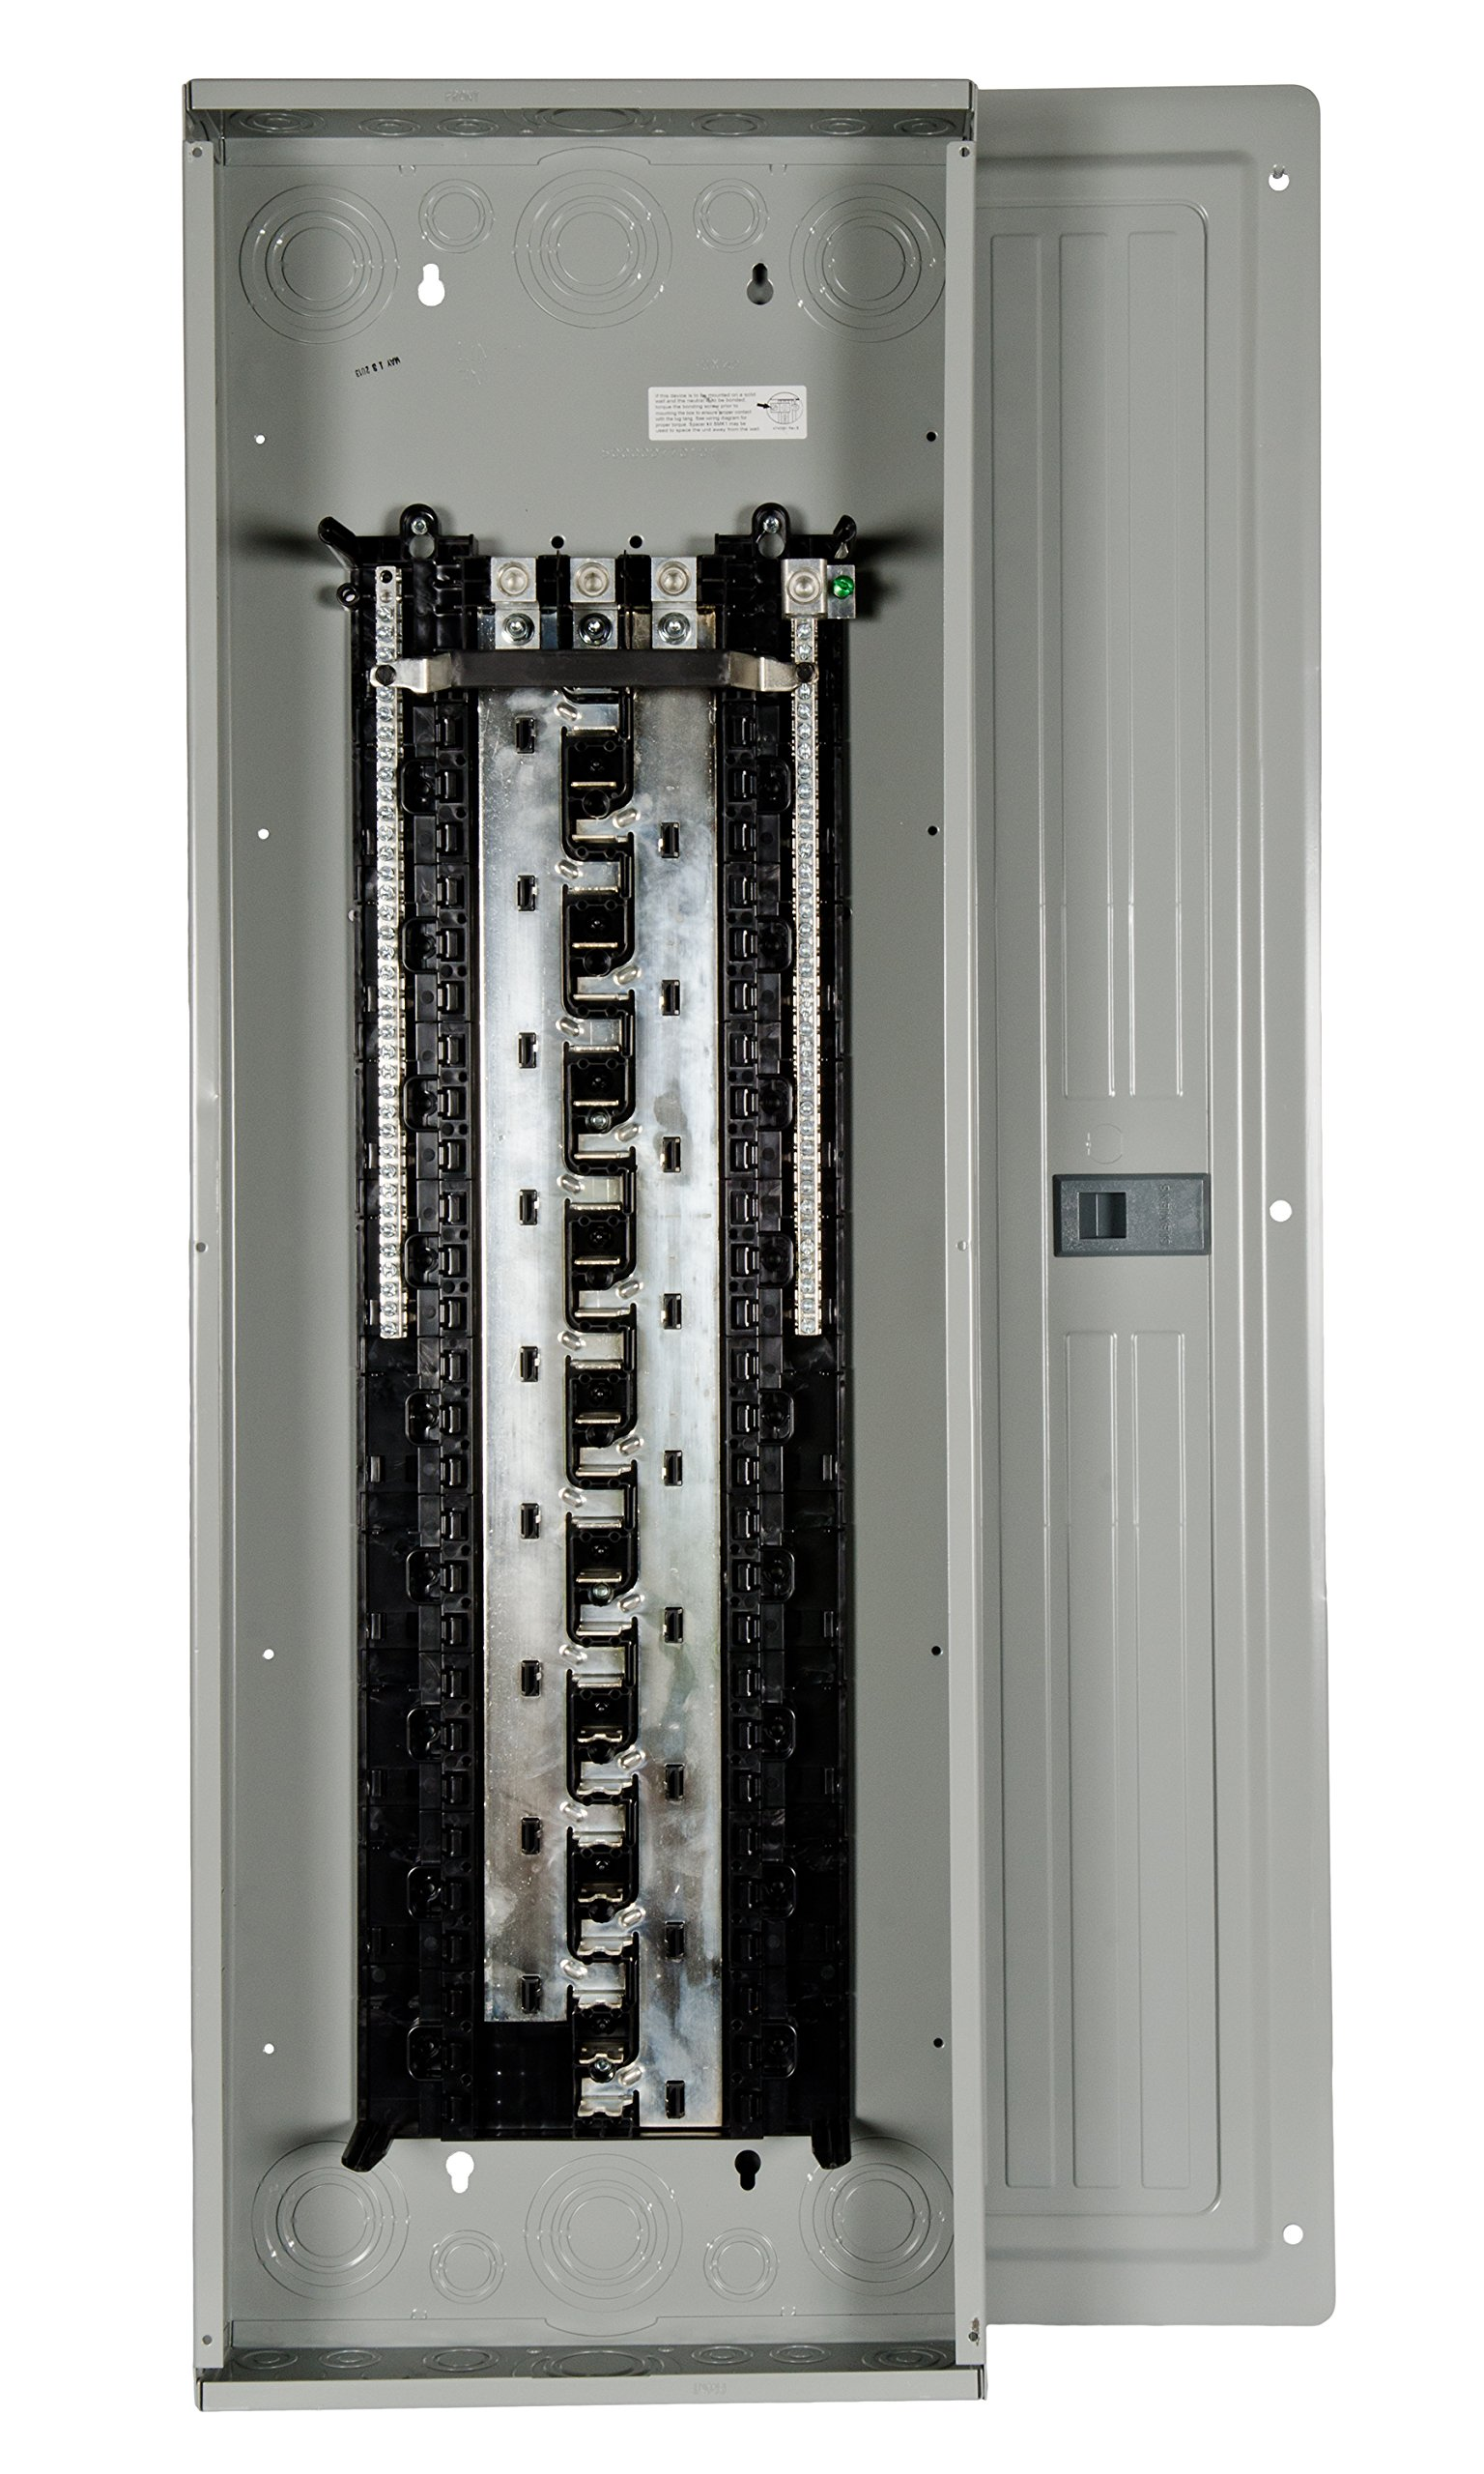 Siemens S5470L3225 225-Amp Indoor Main Lug 54 Space, 70 Circuit 3-Phase Load Center, Copper Bus